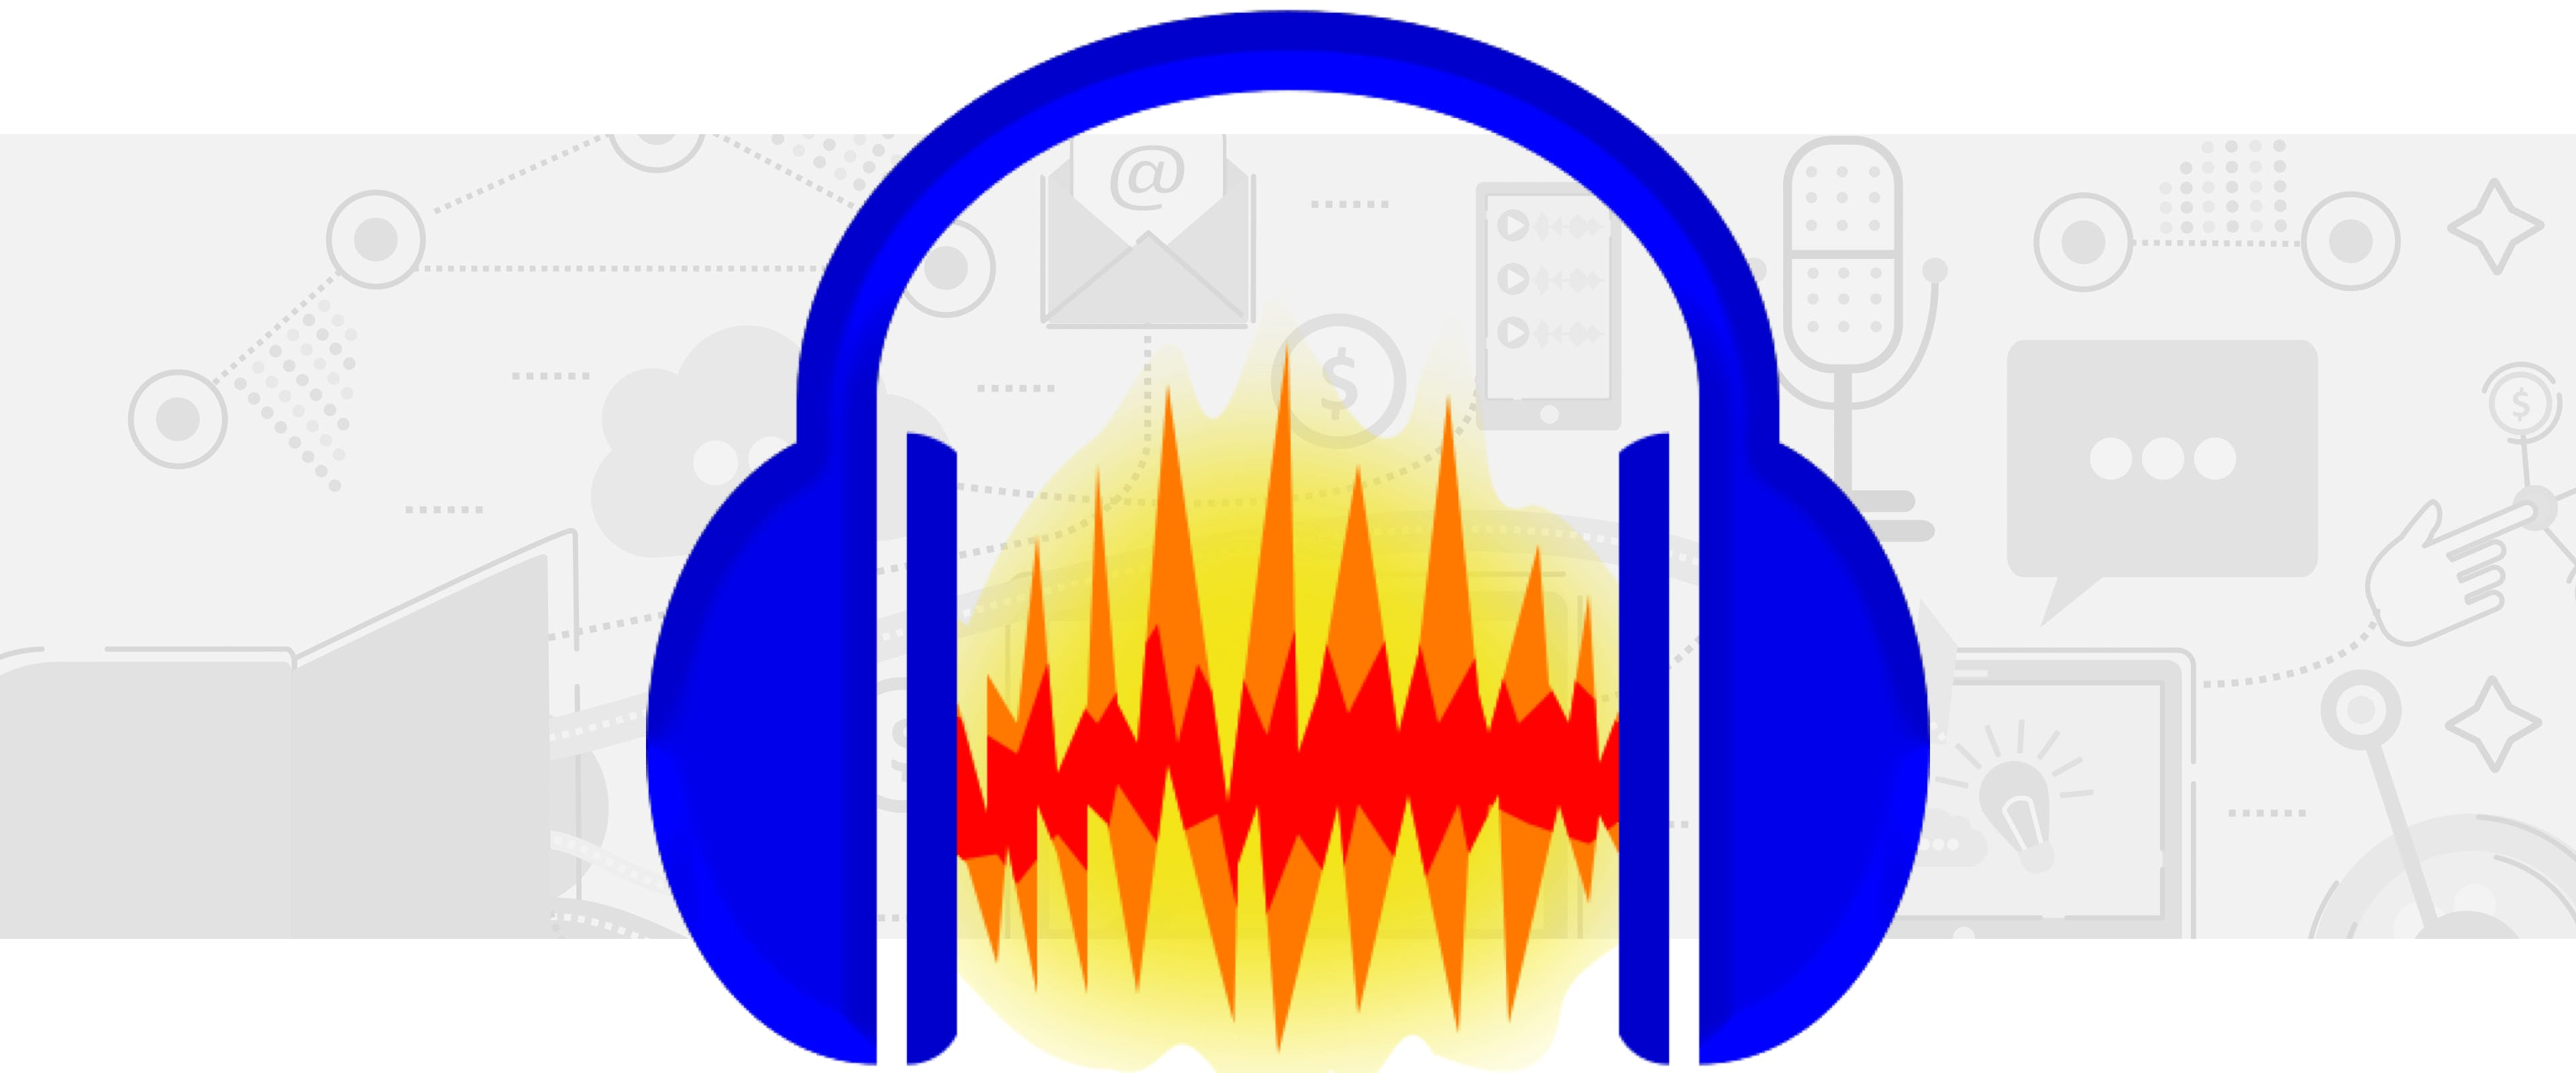 Audacity icon with blue headphones and waveform